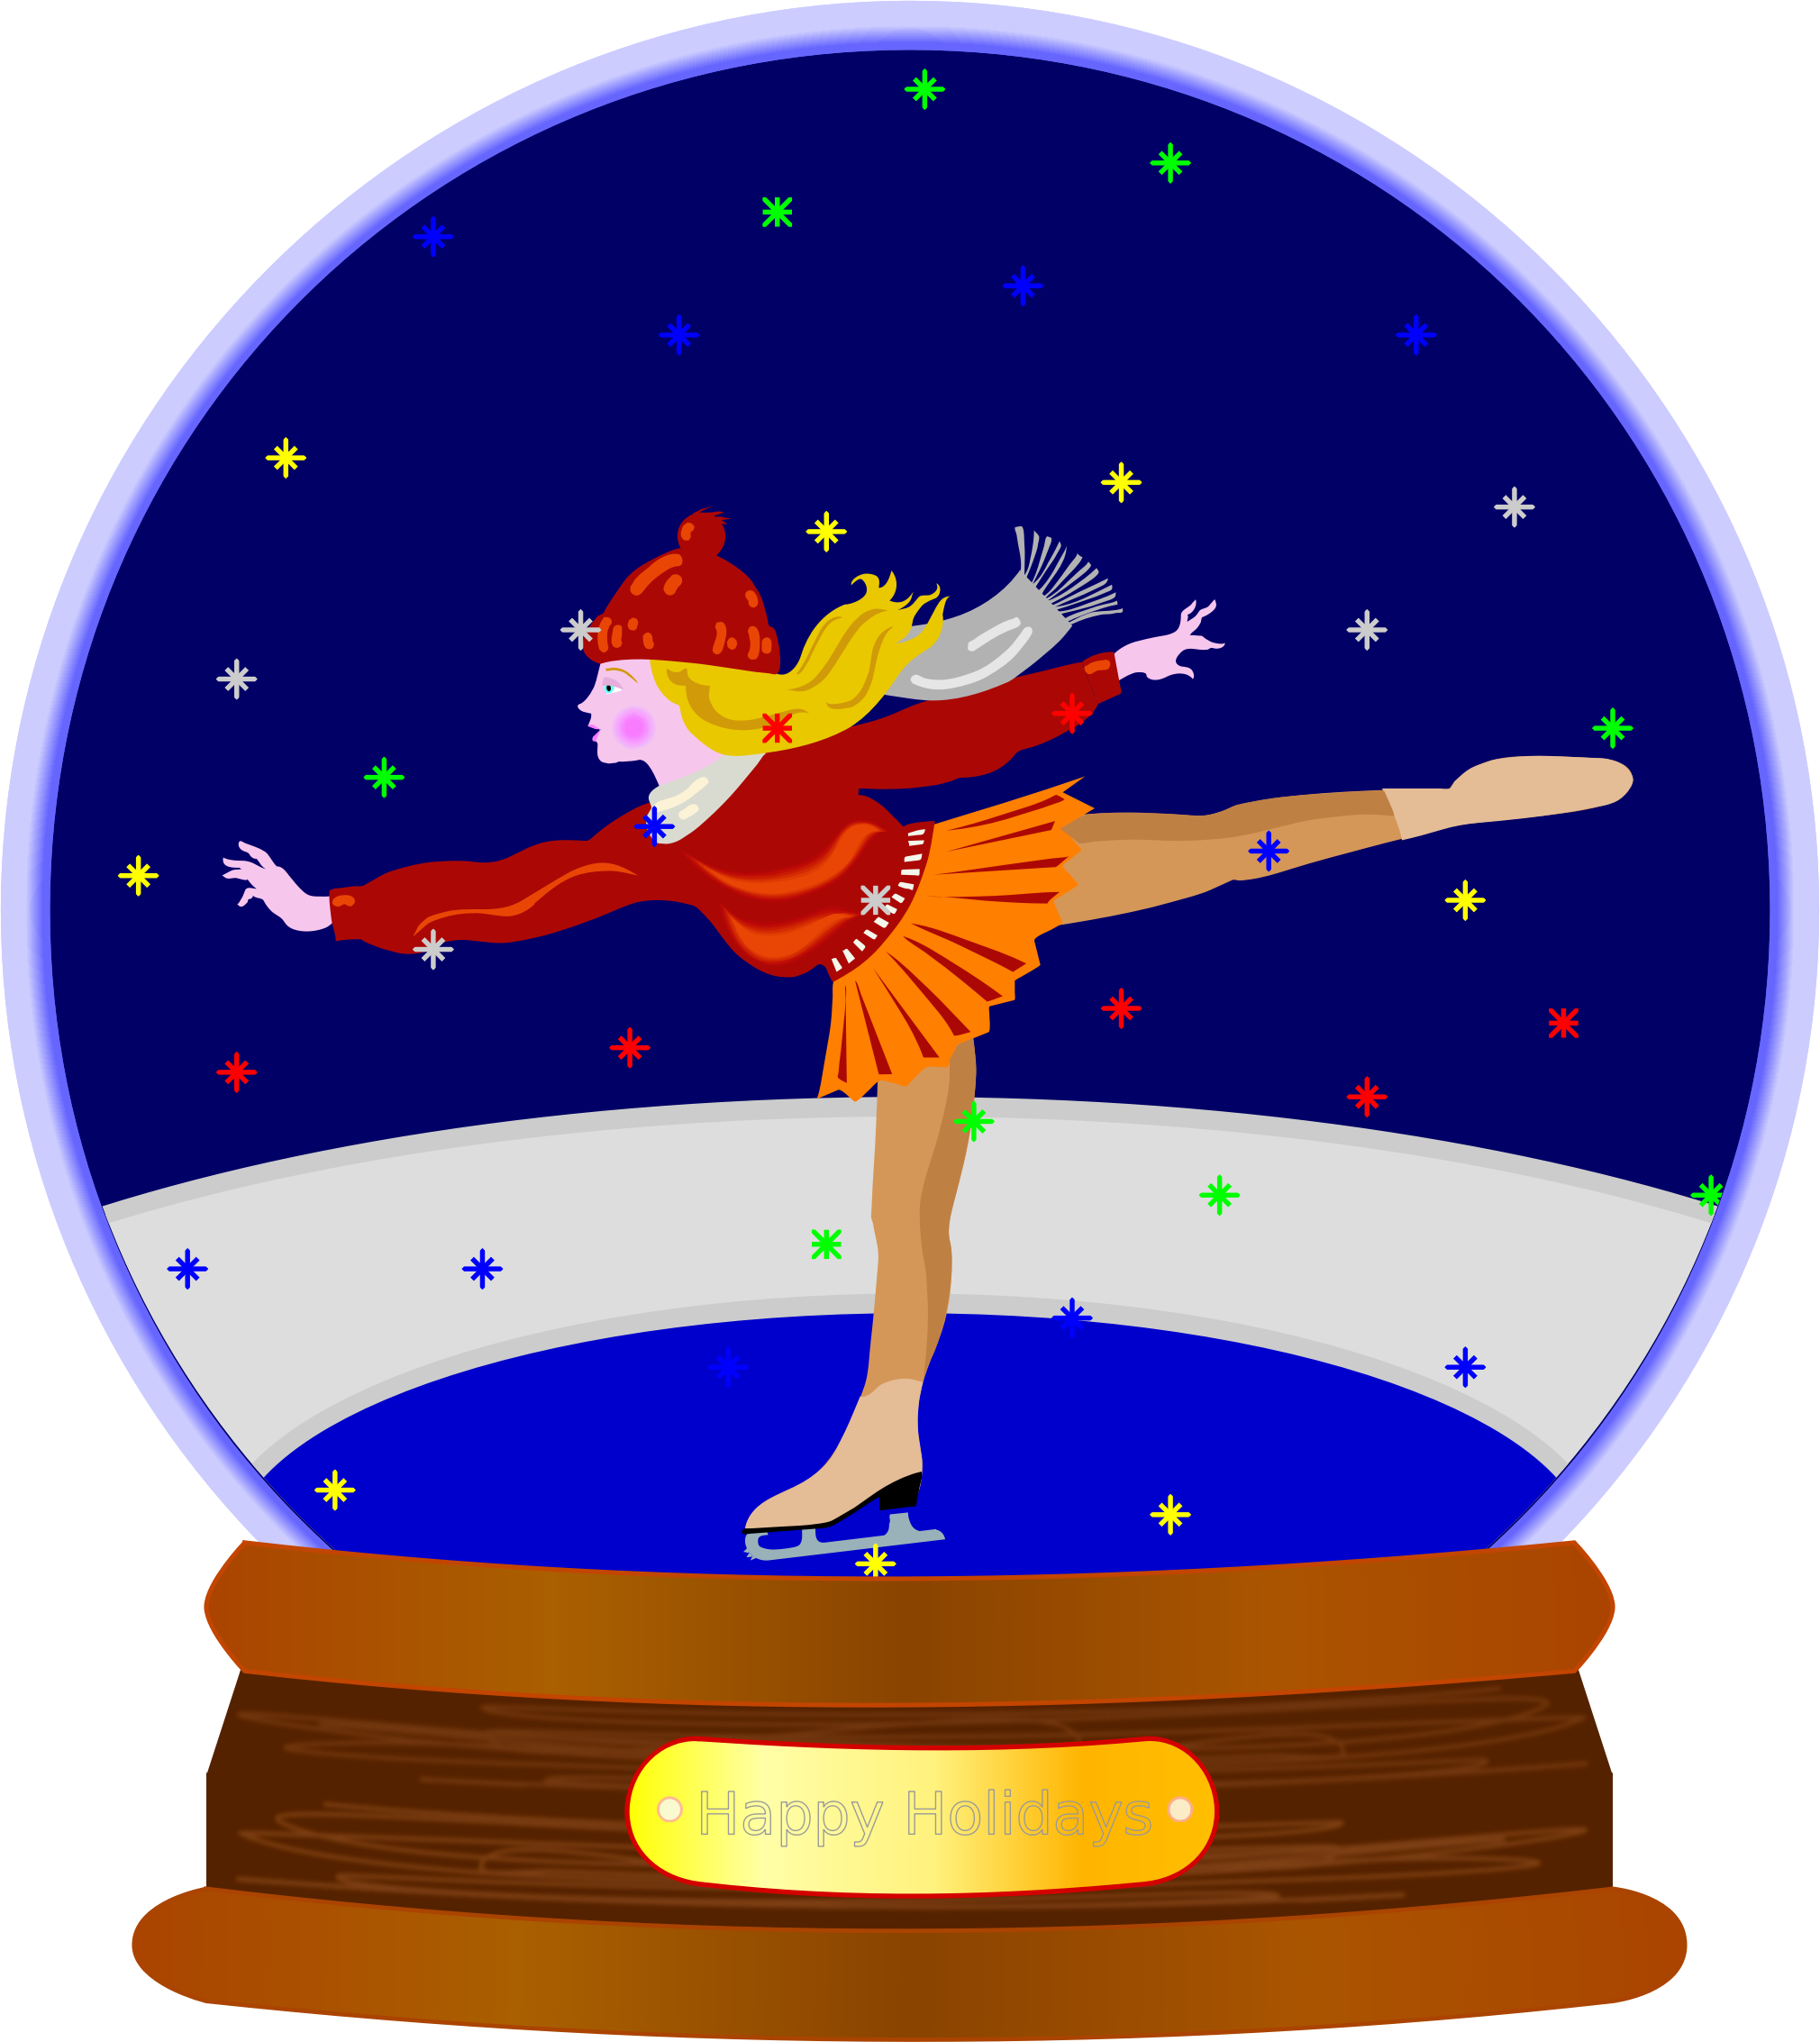 Animated Colored Snow Globe by JayNick